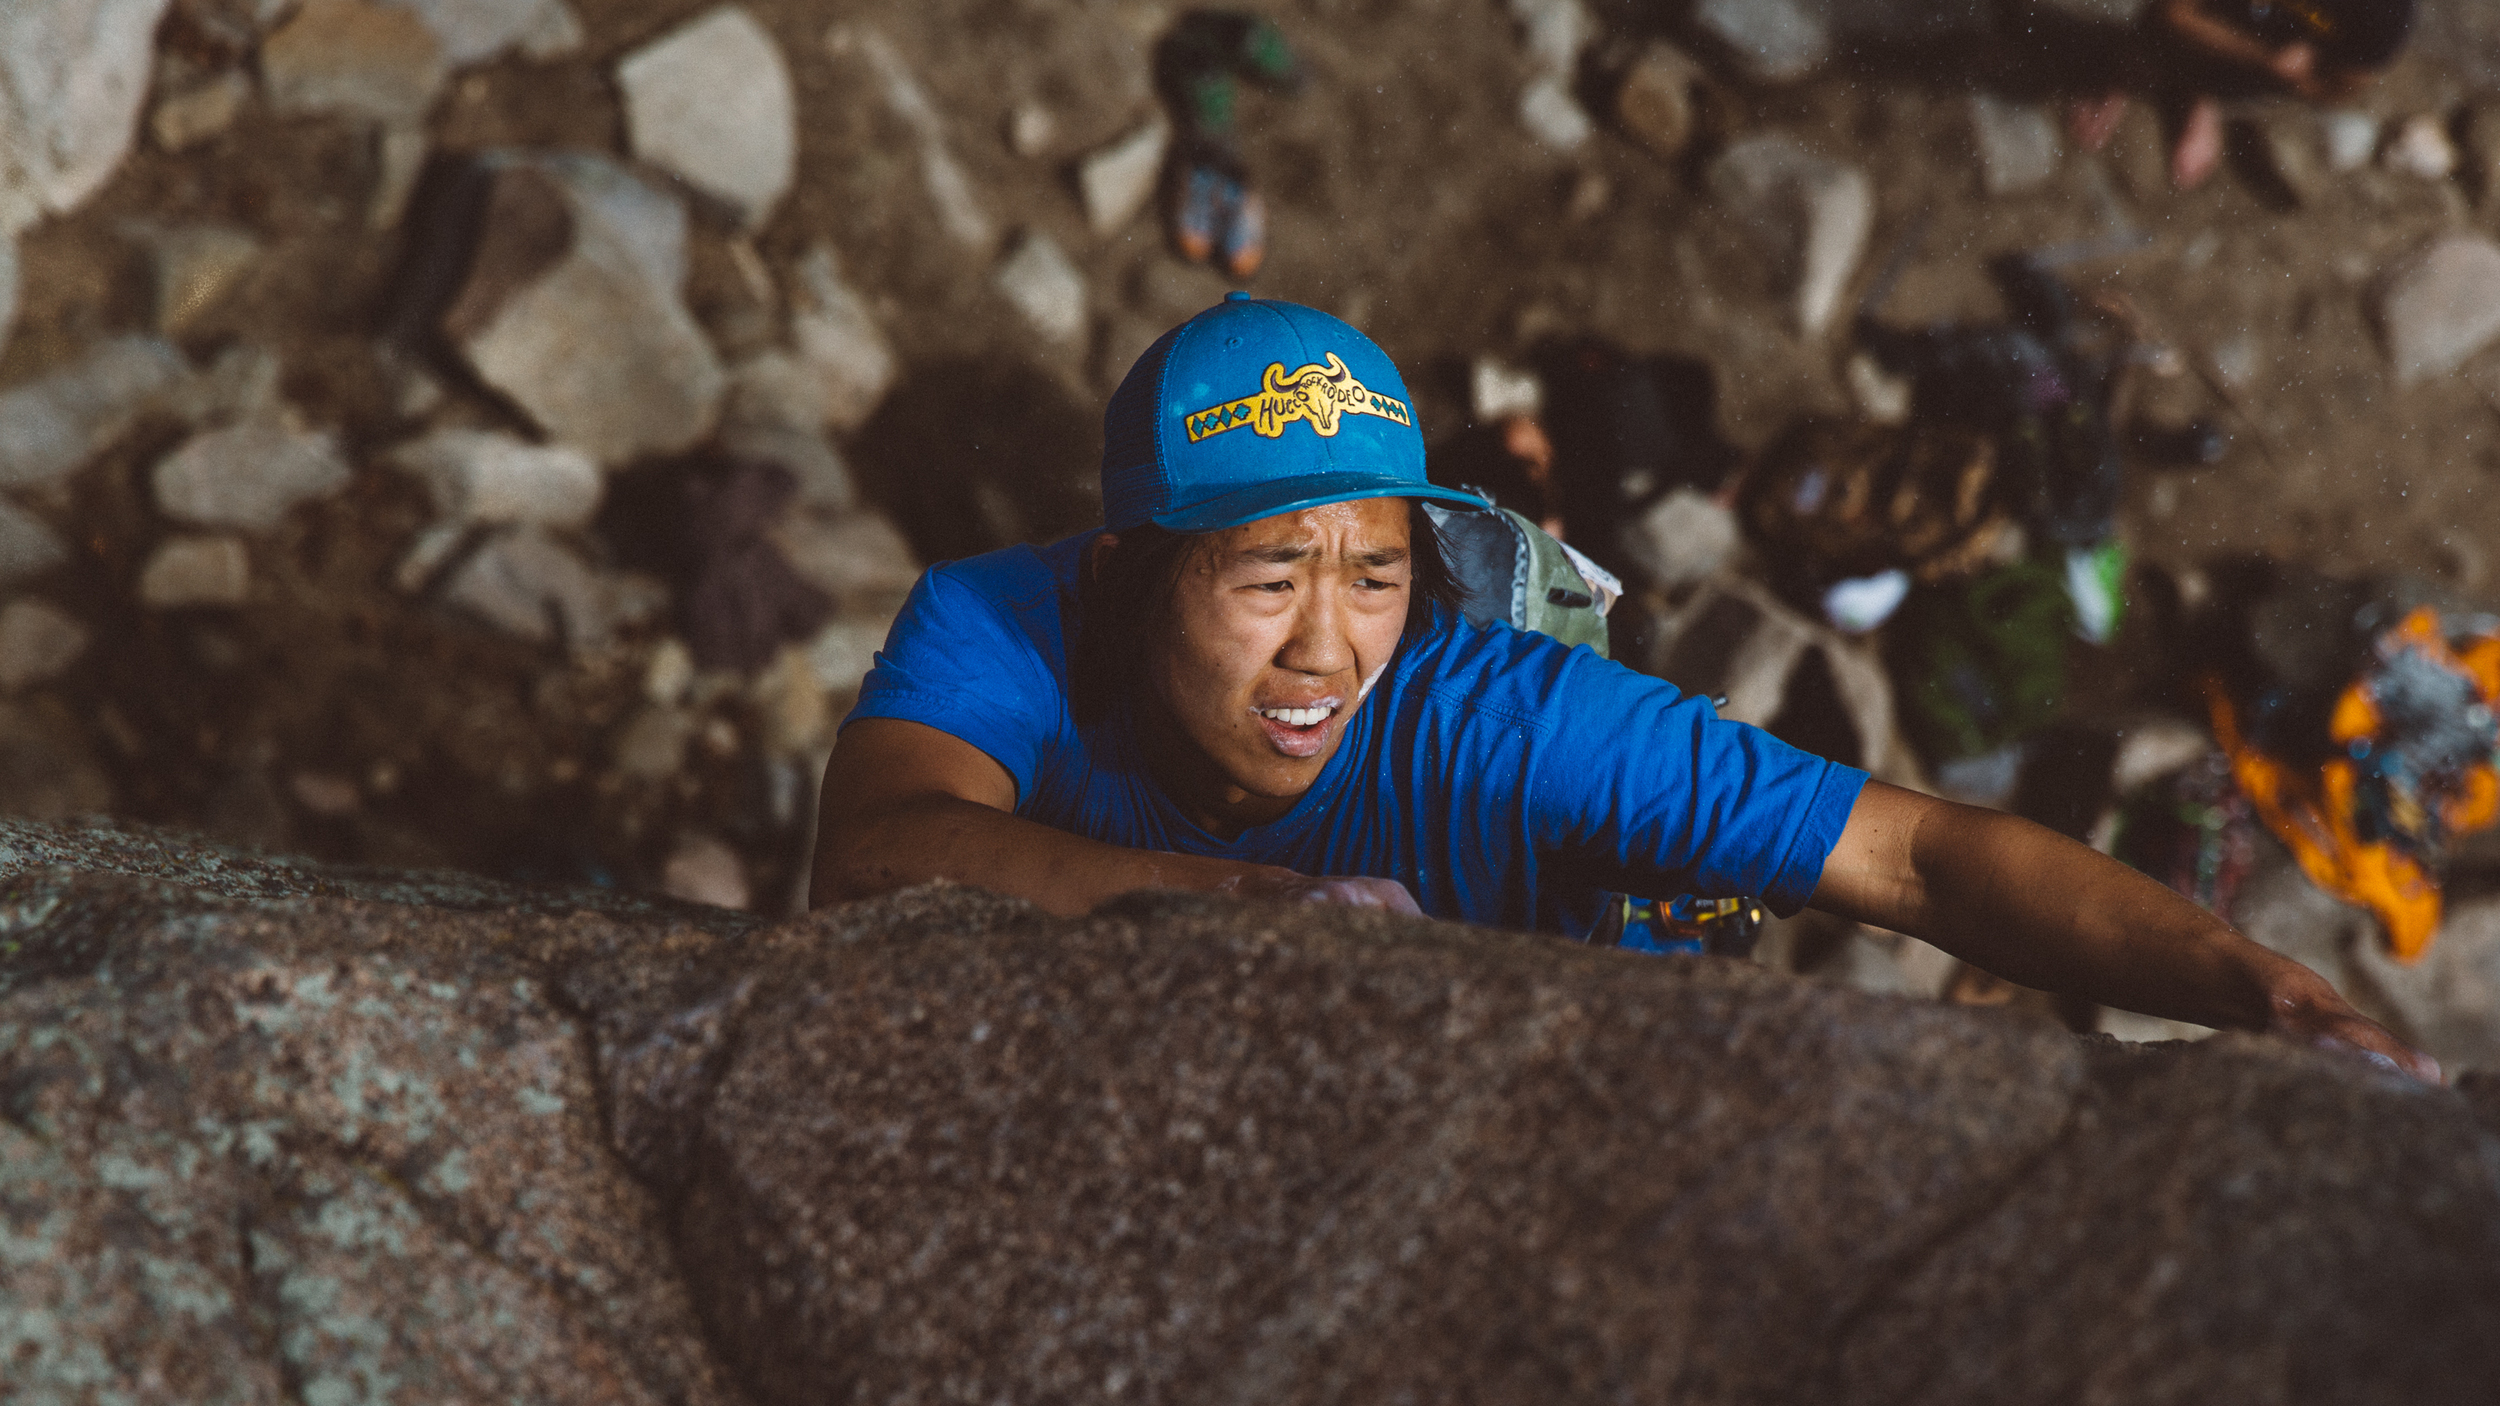 Ben working on his Traditional Climbing Lead skills in Boulder Canyon, Boulder, Colorado.